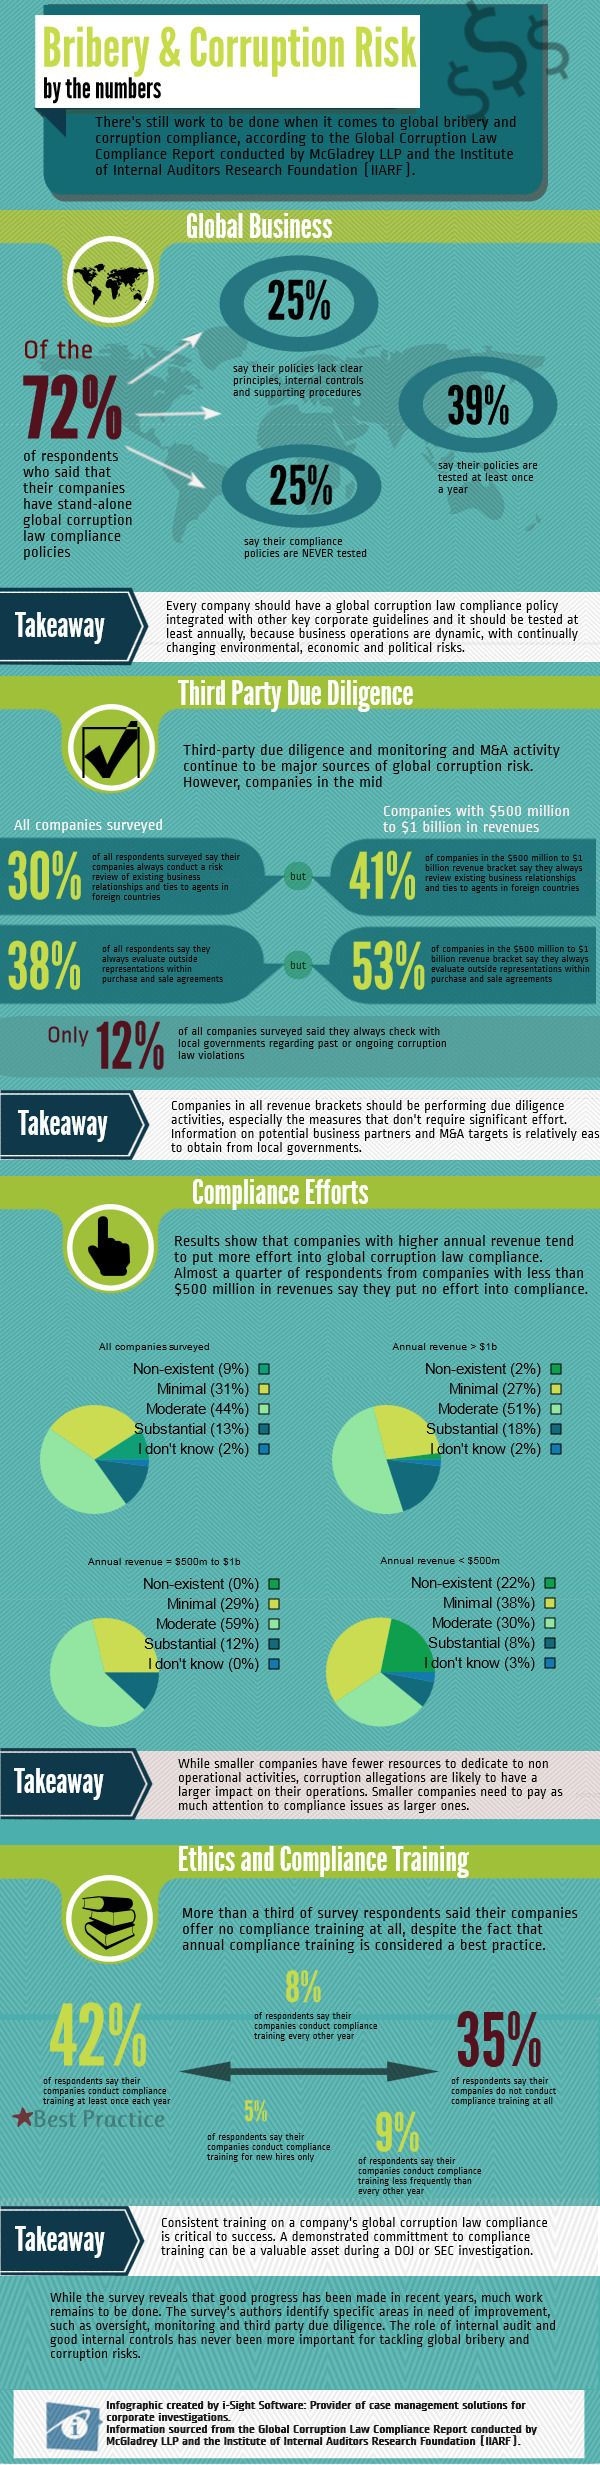 Bribery and Corruption Risk Infographic